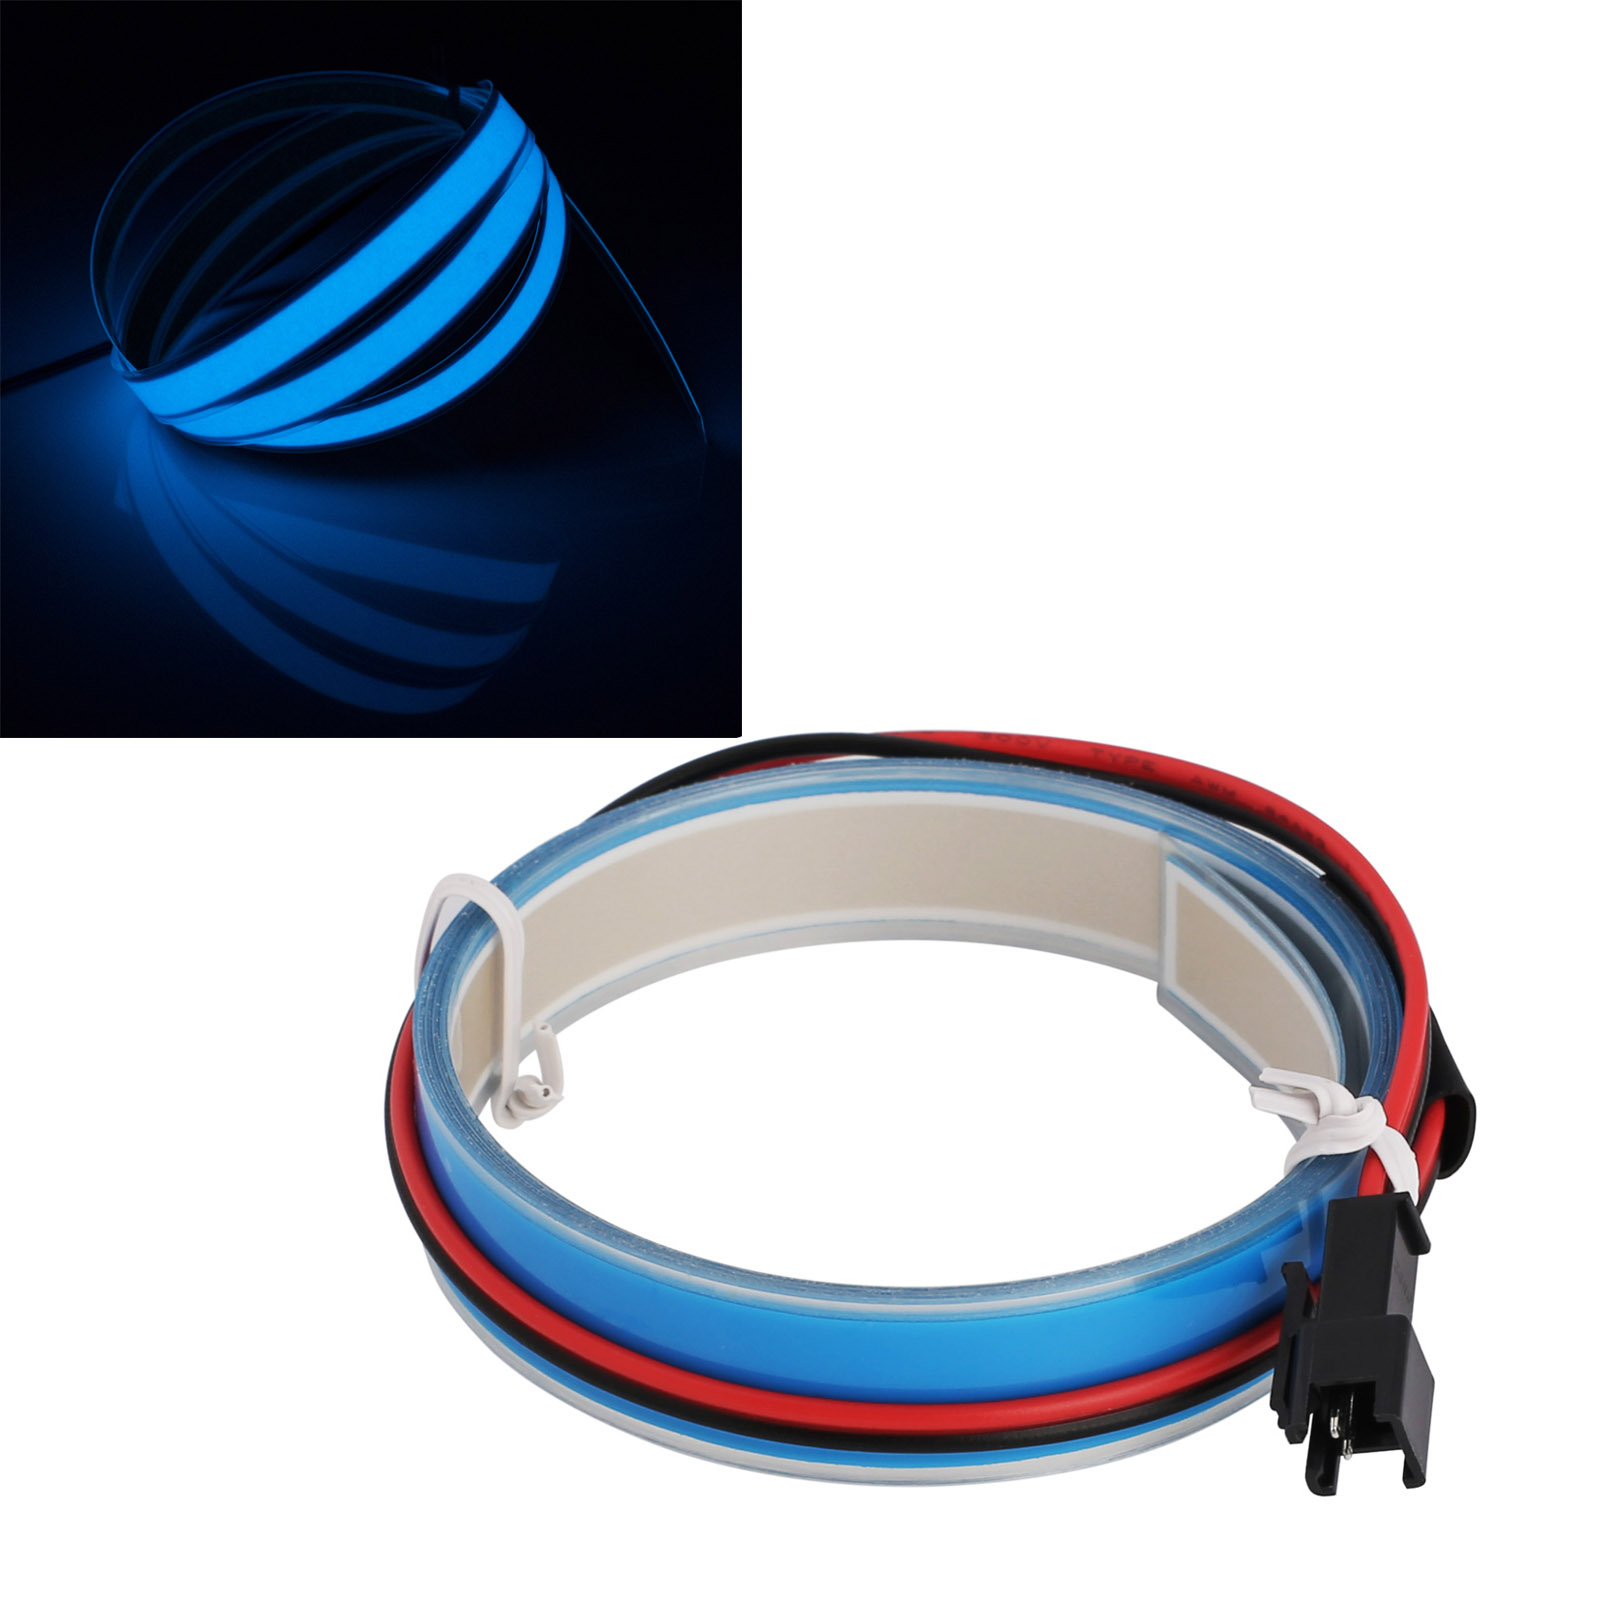 3.28ft LED Flexible Neon Glow EL Wire Tape Strip For Xmas Party ...